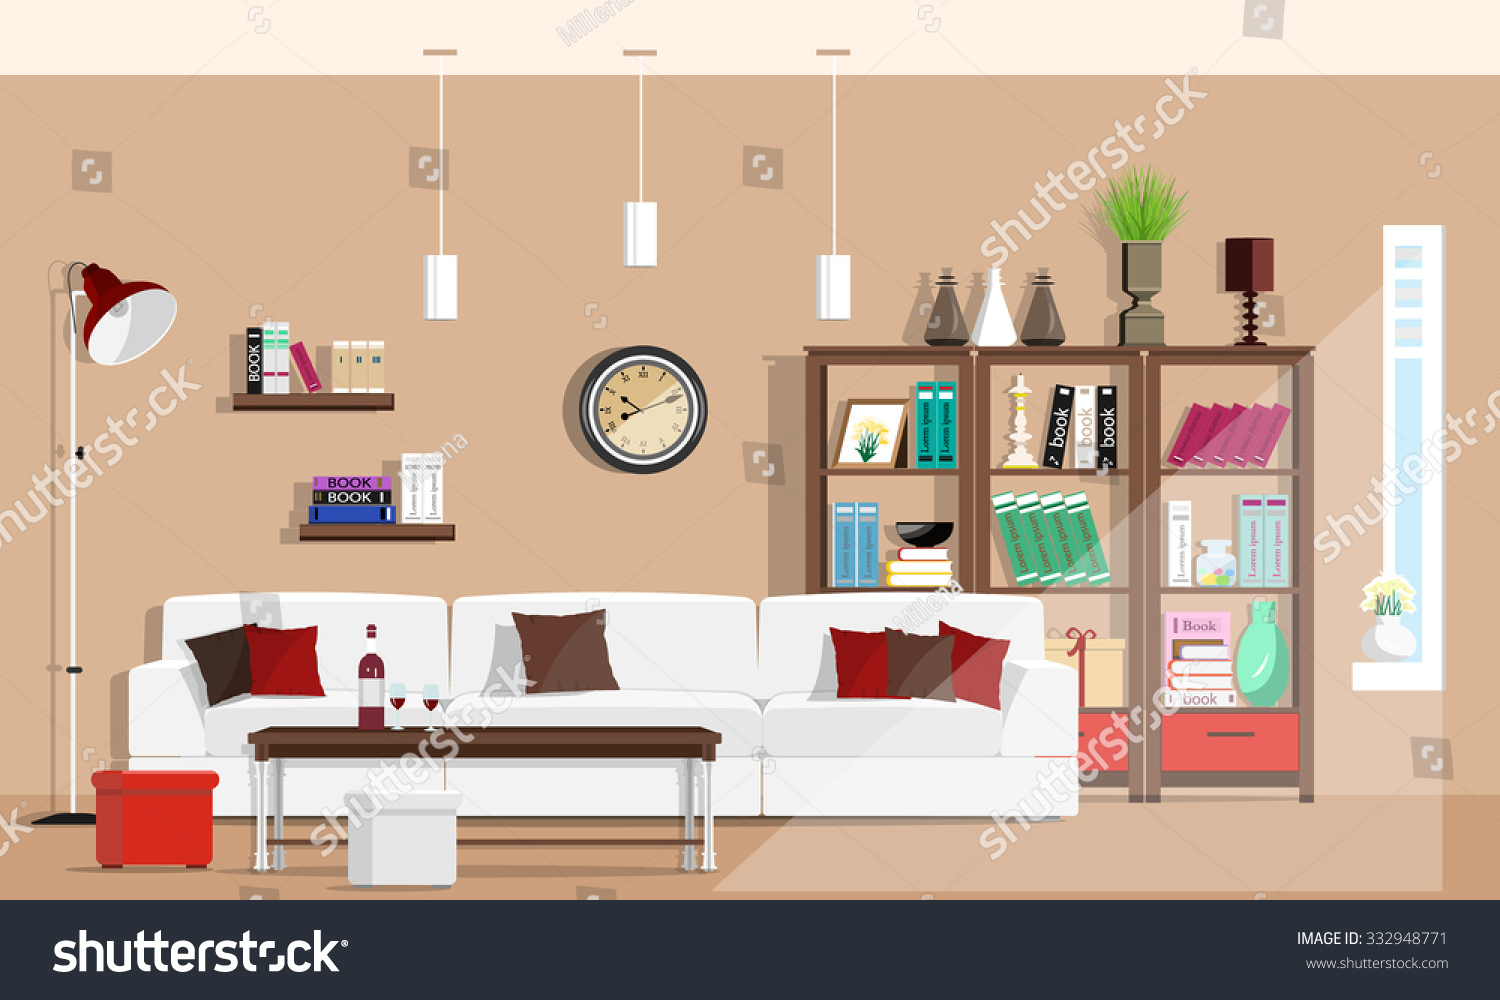 Online Image Photo Editor Shutterstock Editor Interiors Inside Ideas Interiors design about Everything [magnanprojects.com]